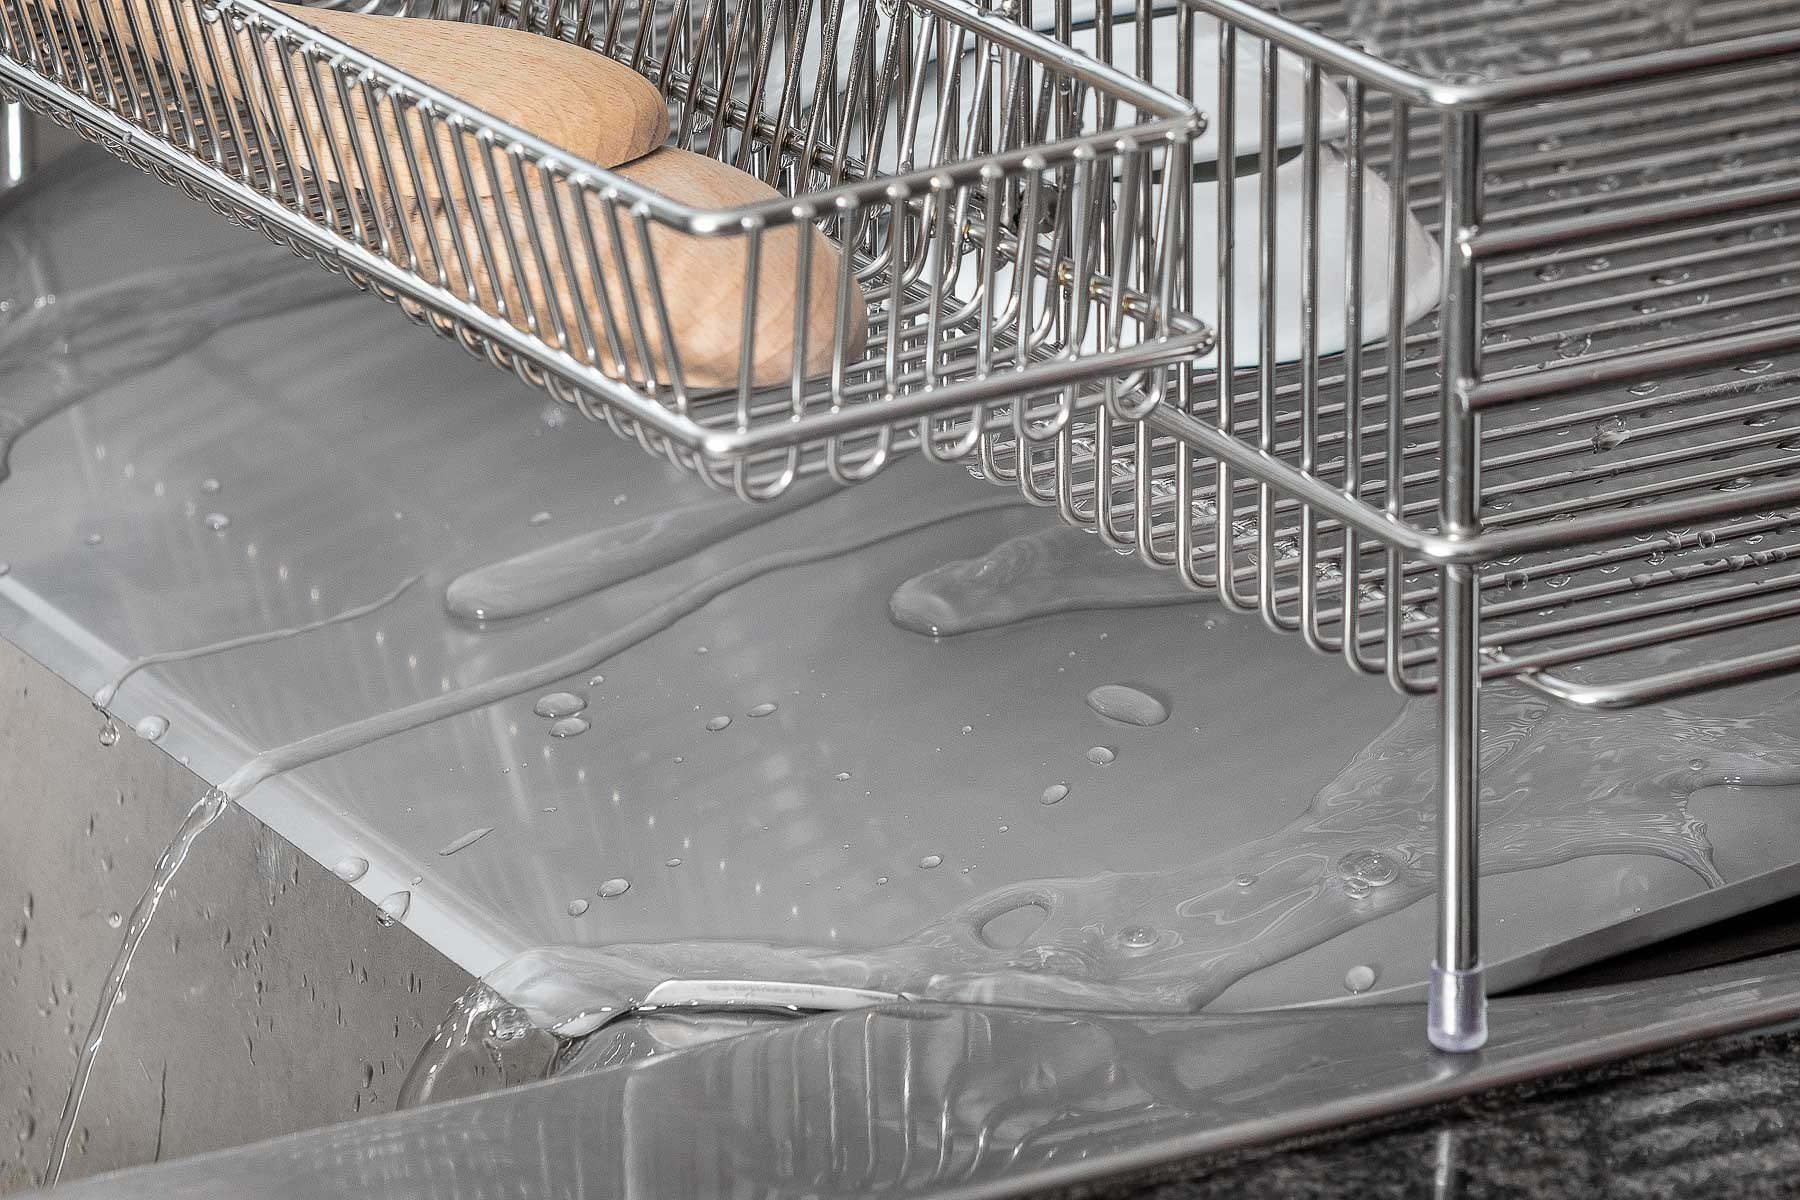 Dish Rack Water running of Water catcher - Product photography for Amazon